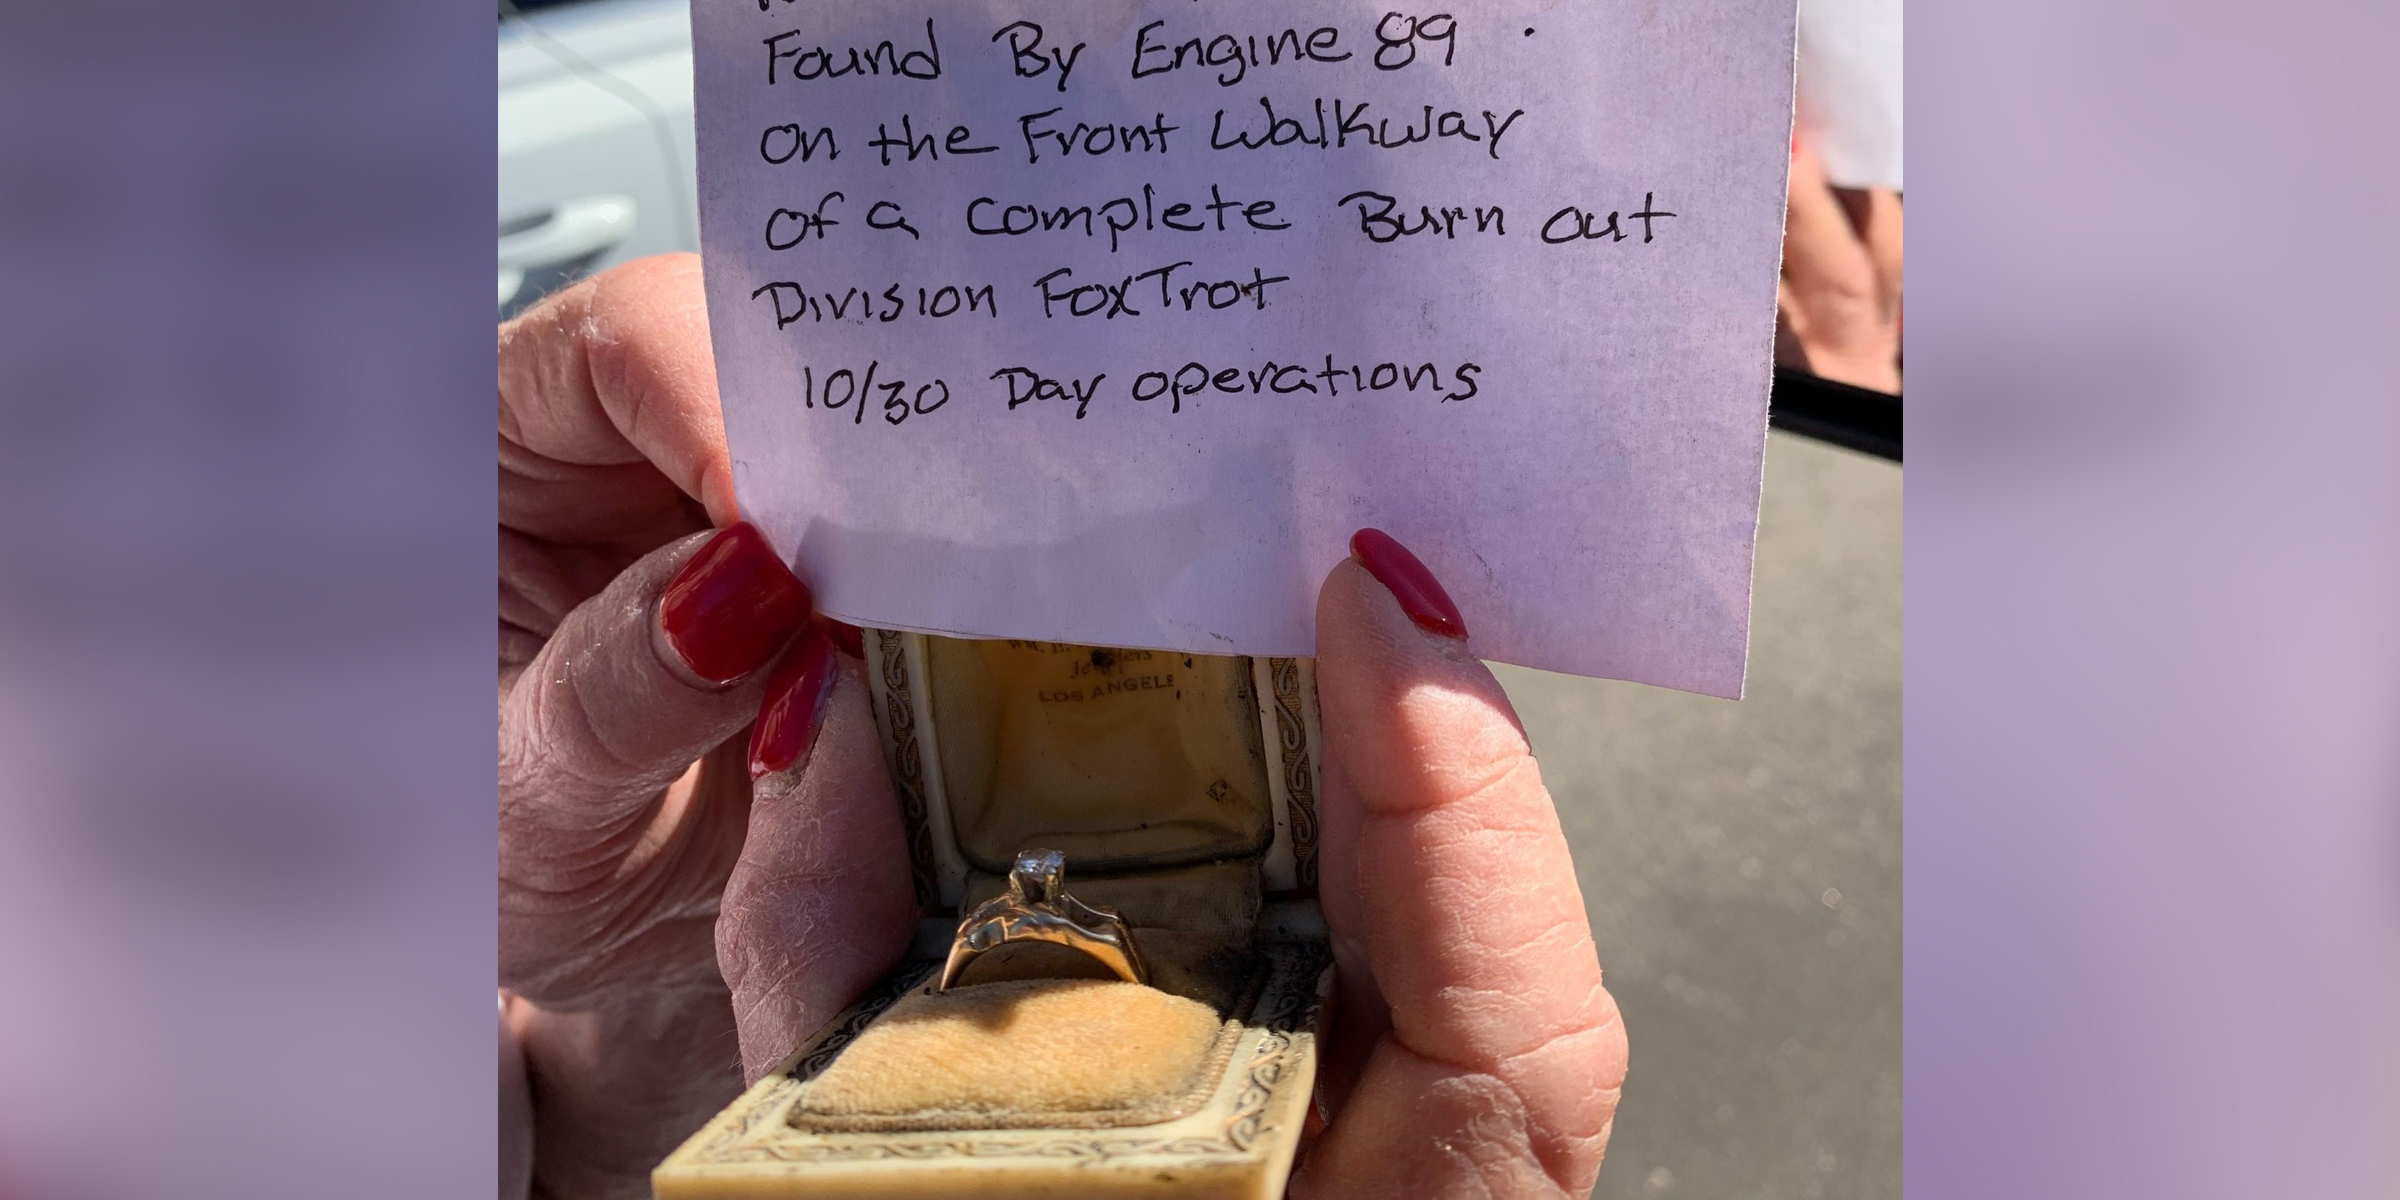 Wedding ring found in Maria fire debris becomes a 'symbol of hope'